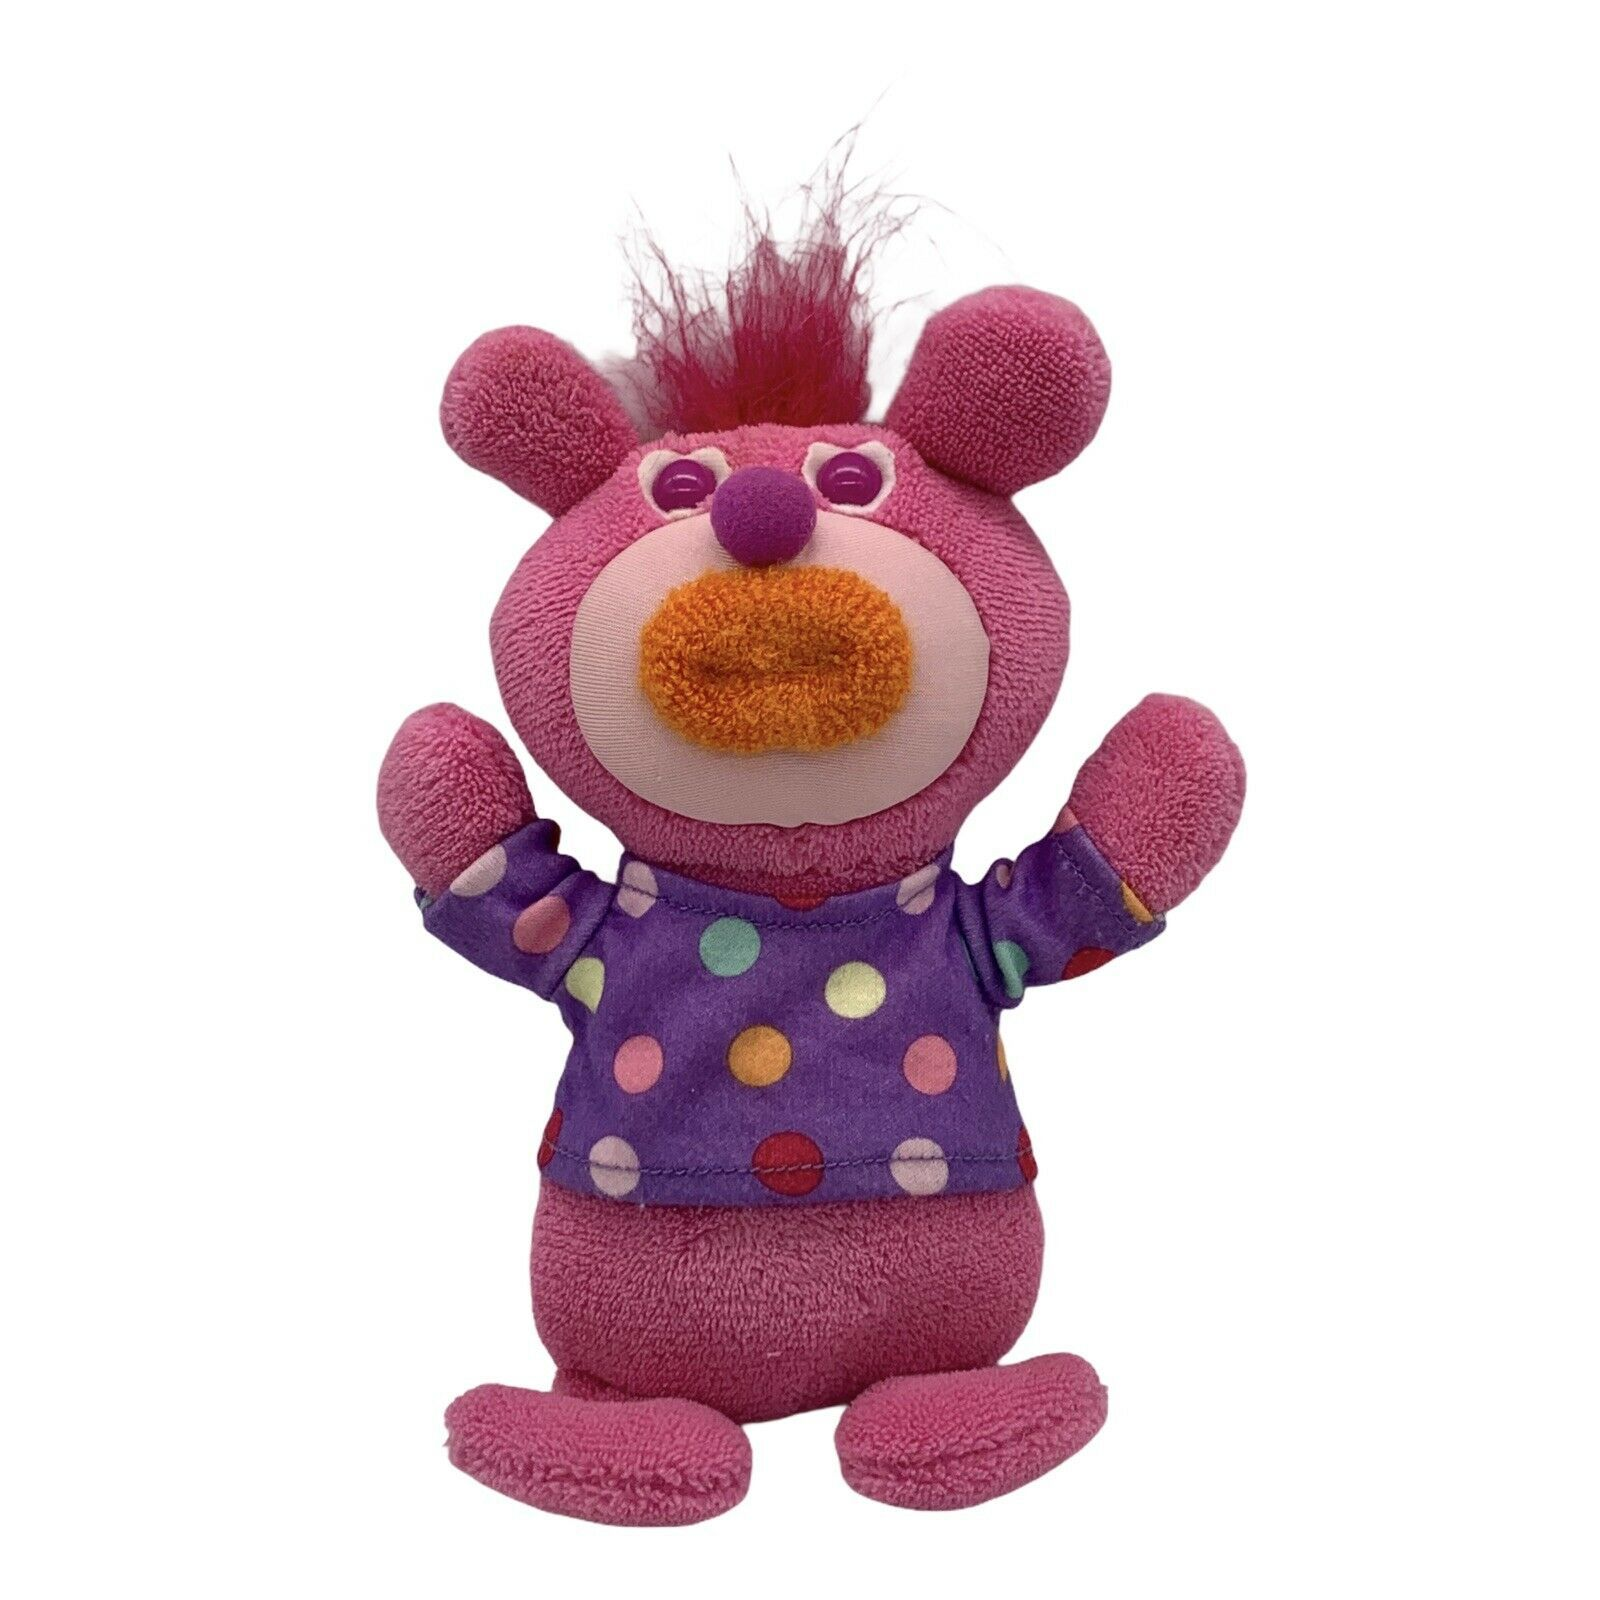 Primary image for Sing a Ma Jig Plush Singing Fisher Price Mattel Pink Orange Lip Purple Polka Dot